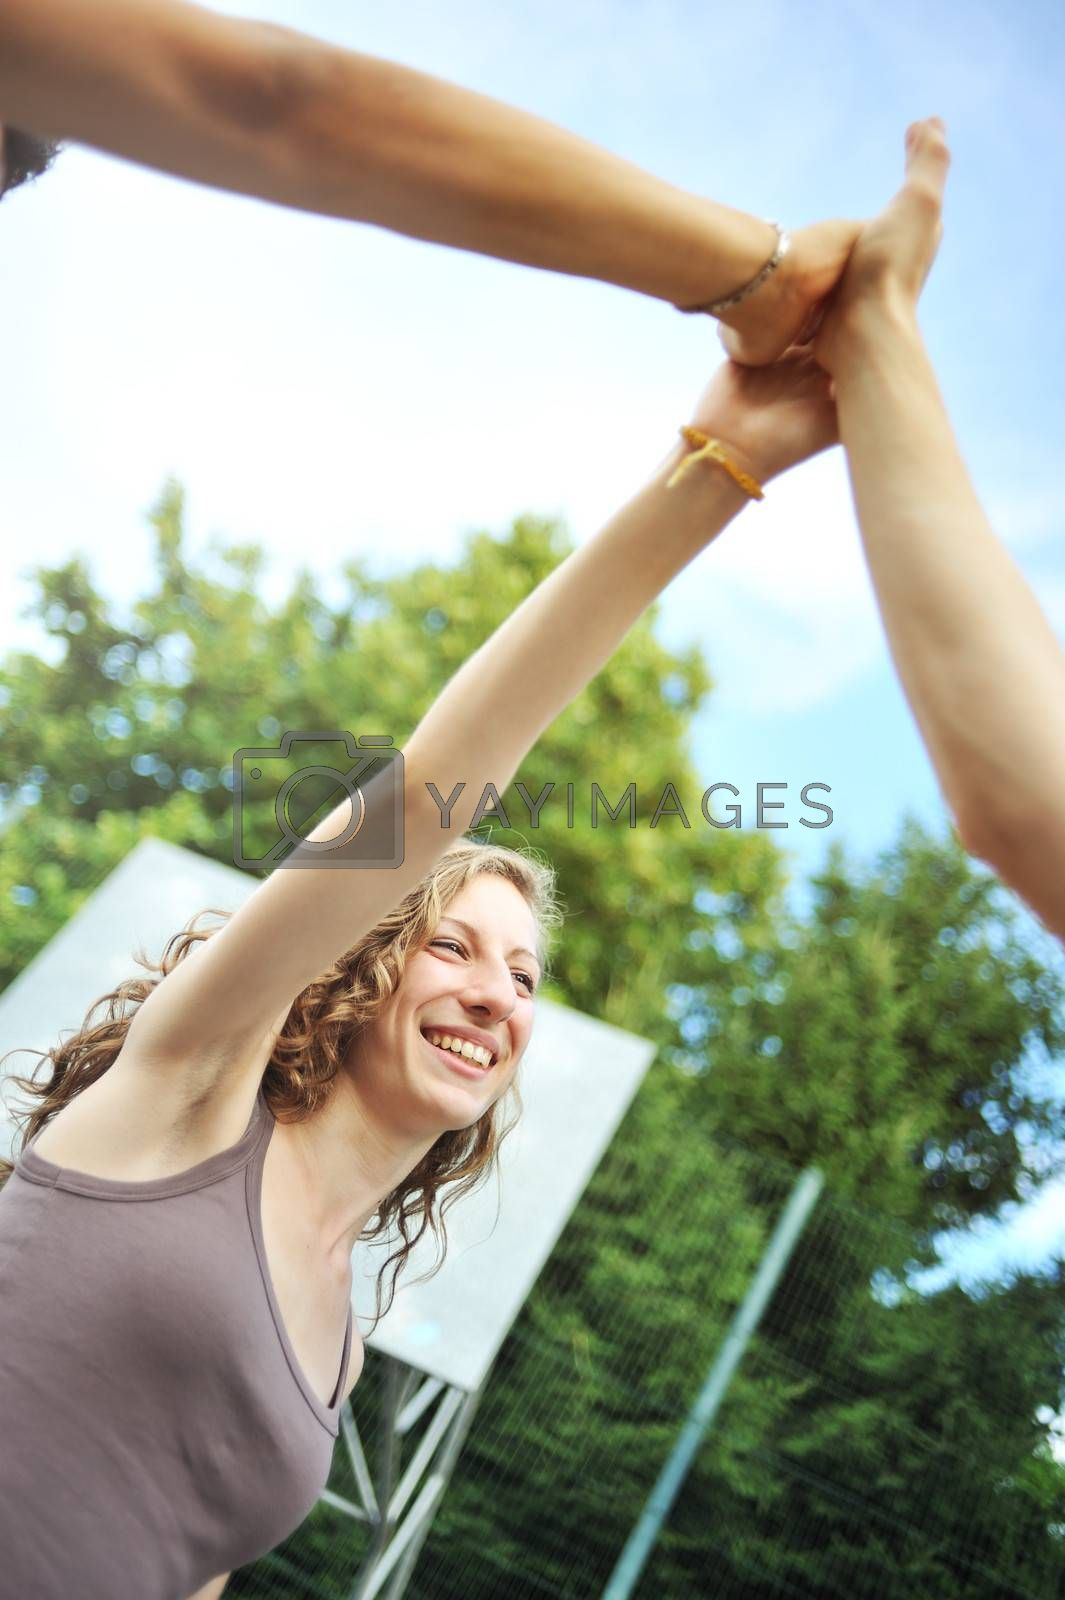 Three teenagers giving a high five, hands close up